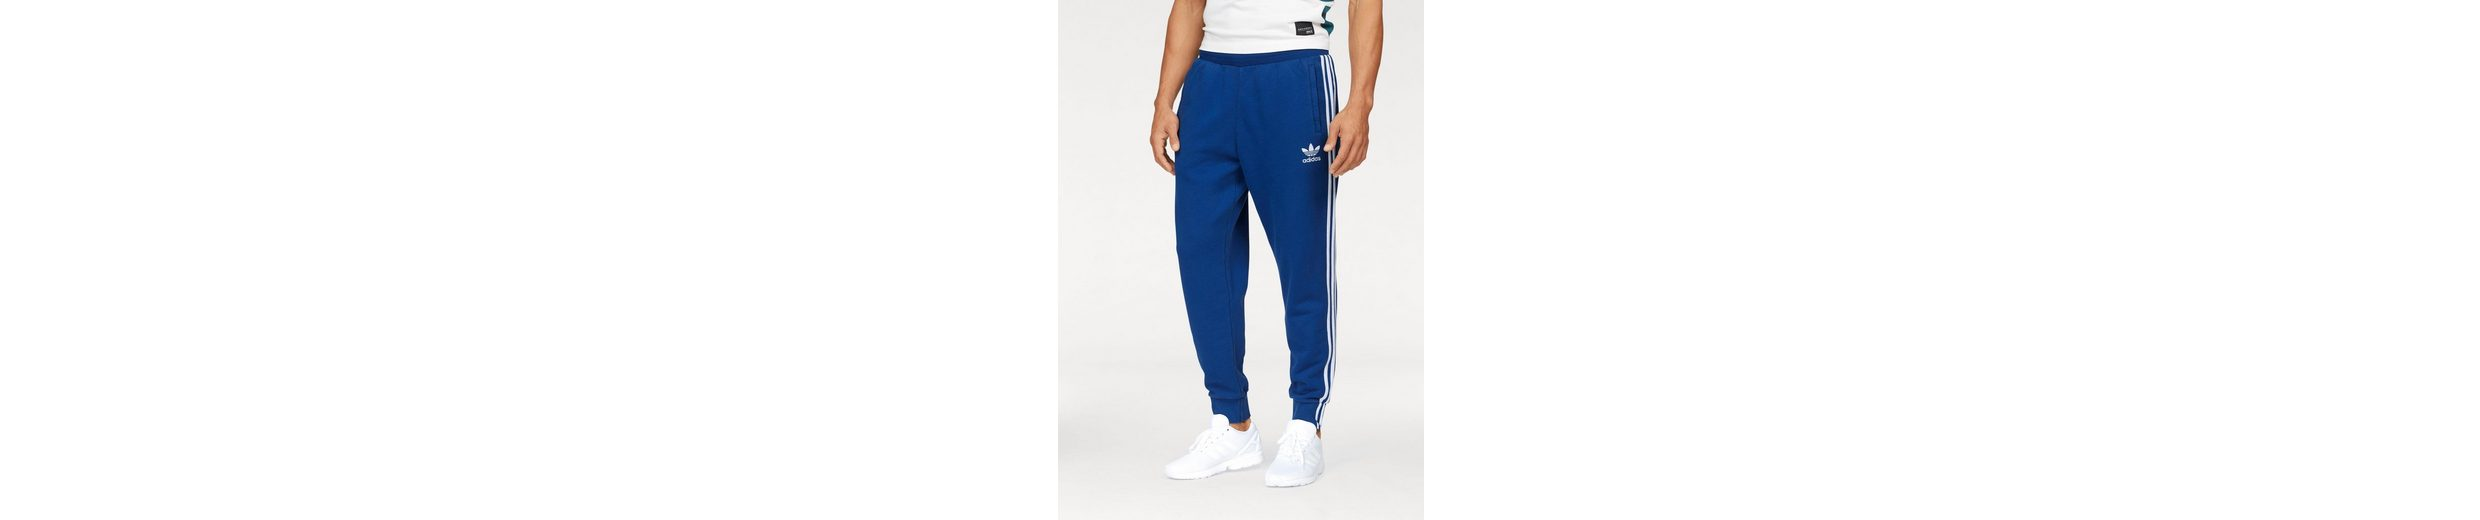 adidas Originals Jogginghose 3-STRIPES PANTS